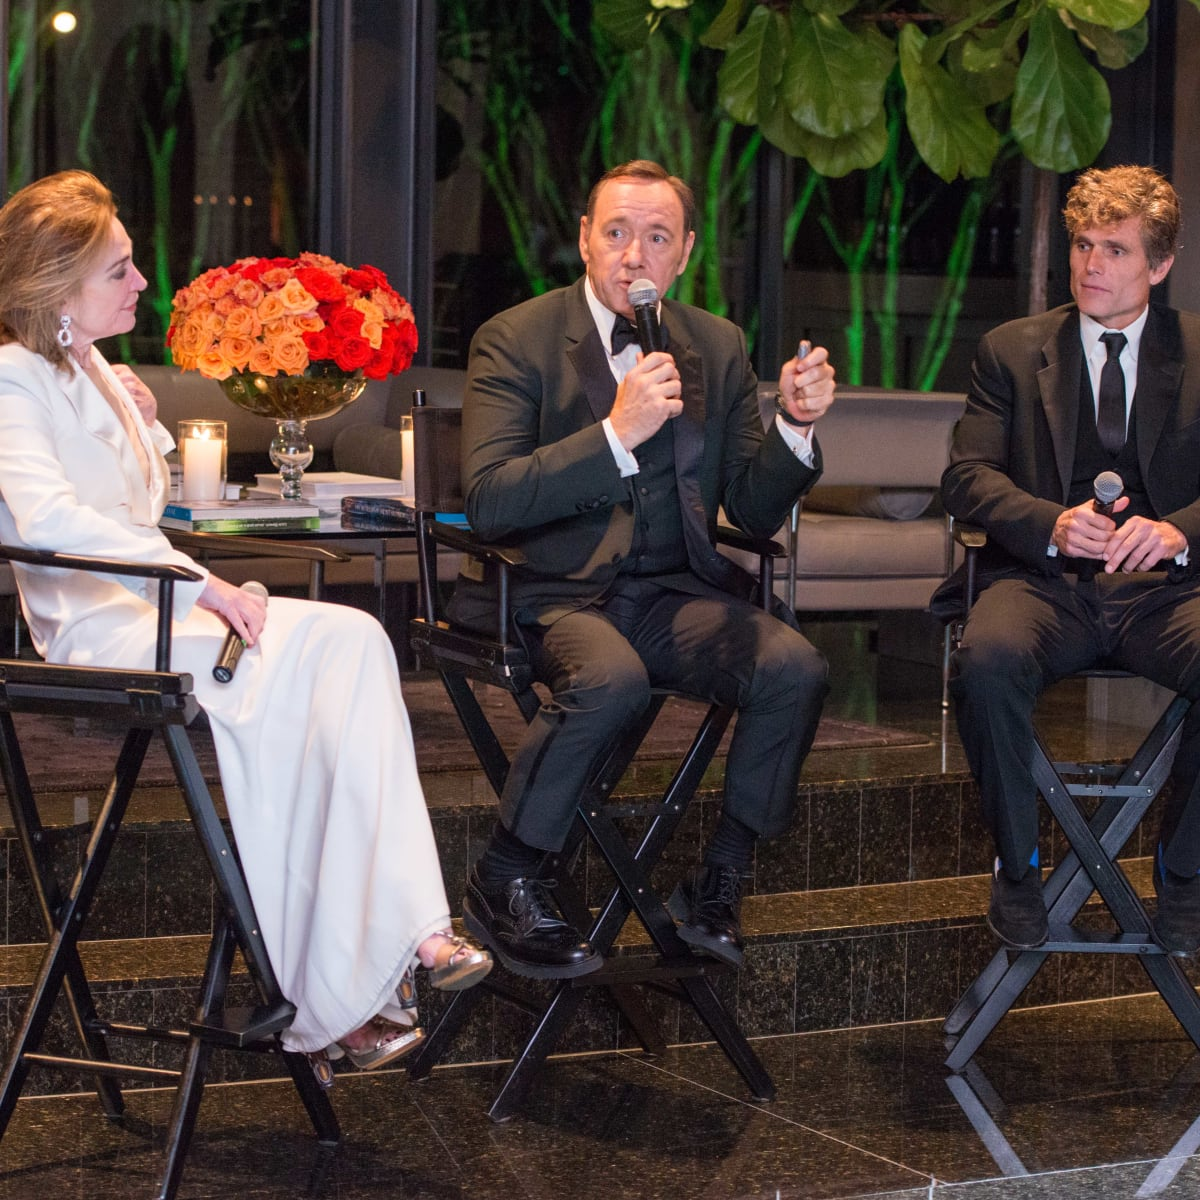 News, Shelby, Best Buddies, Kevin Spacey, Nov. 2015, Becca Cason Thrash, Kevin Spacey, Anthony Kennedy Shriver